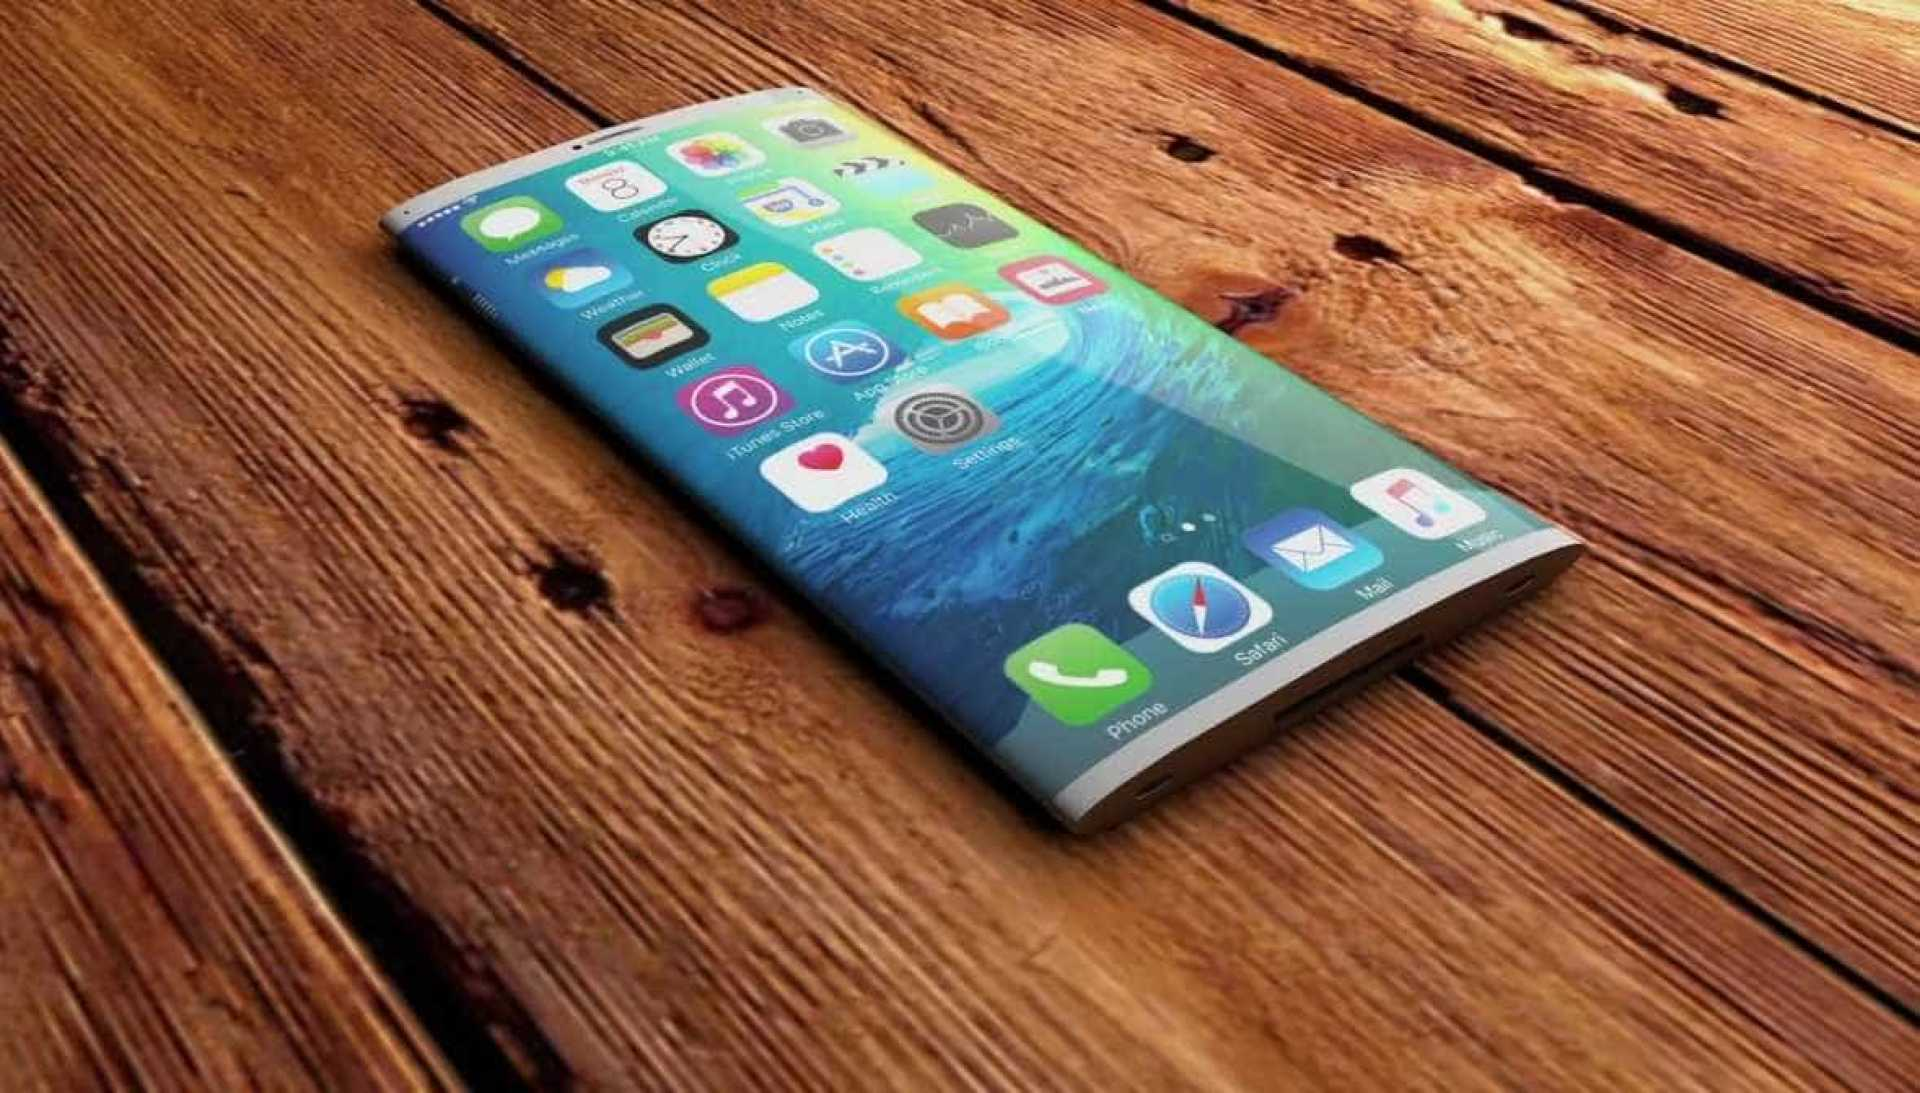 This foldable iPhone concept video puts today's folding phones to shame 1